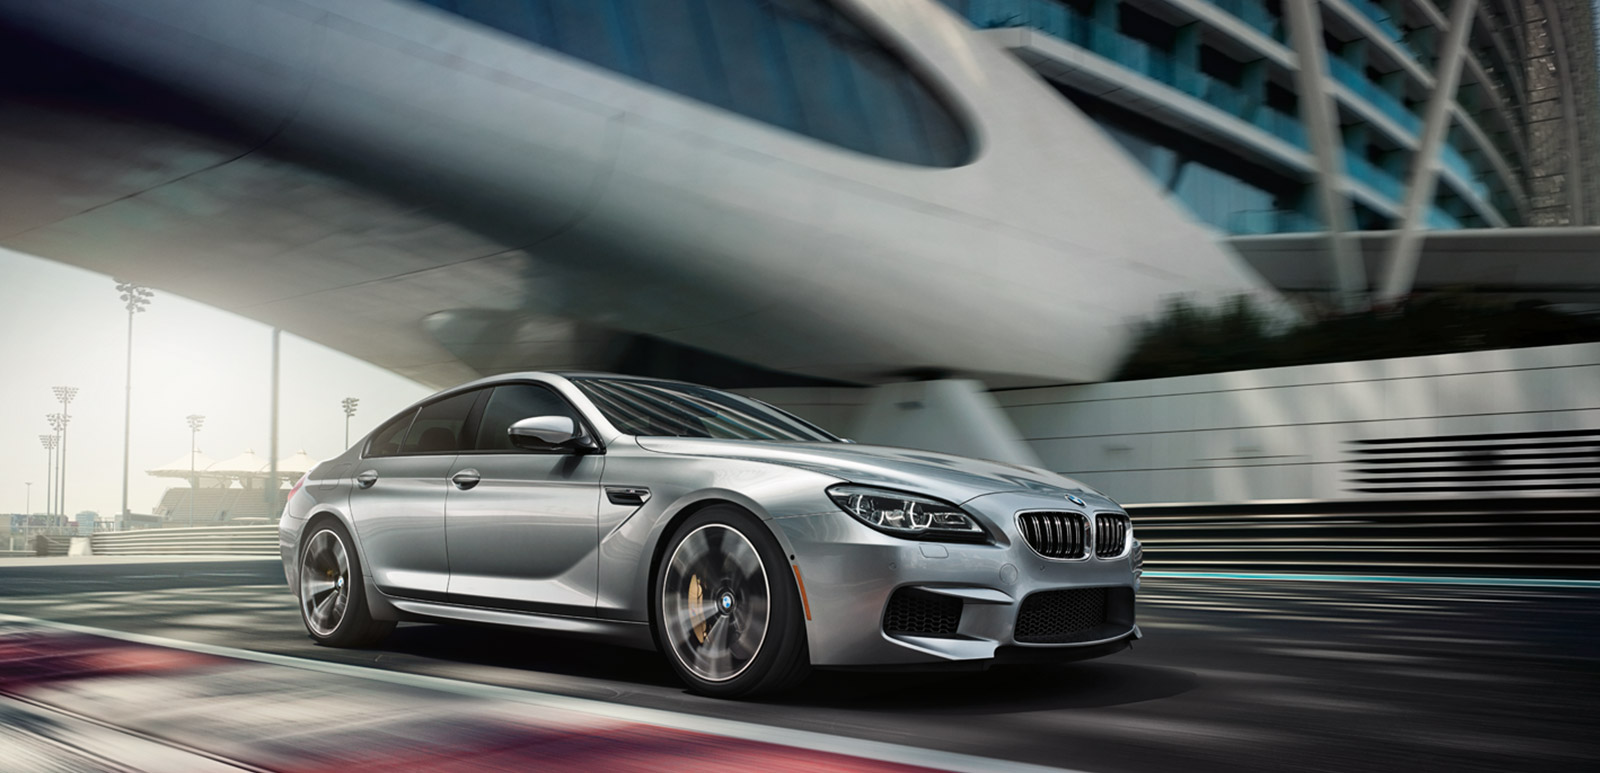 New Bmw M6 Series Offers